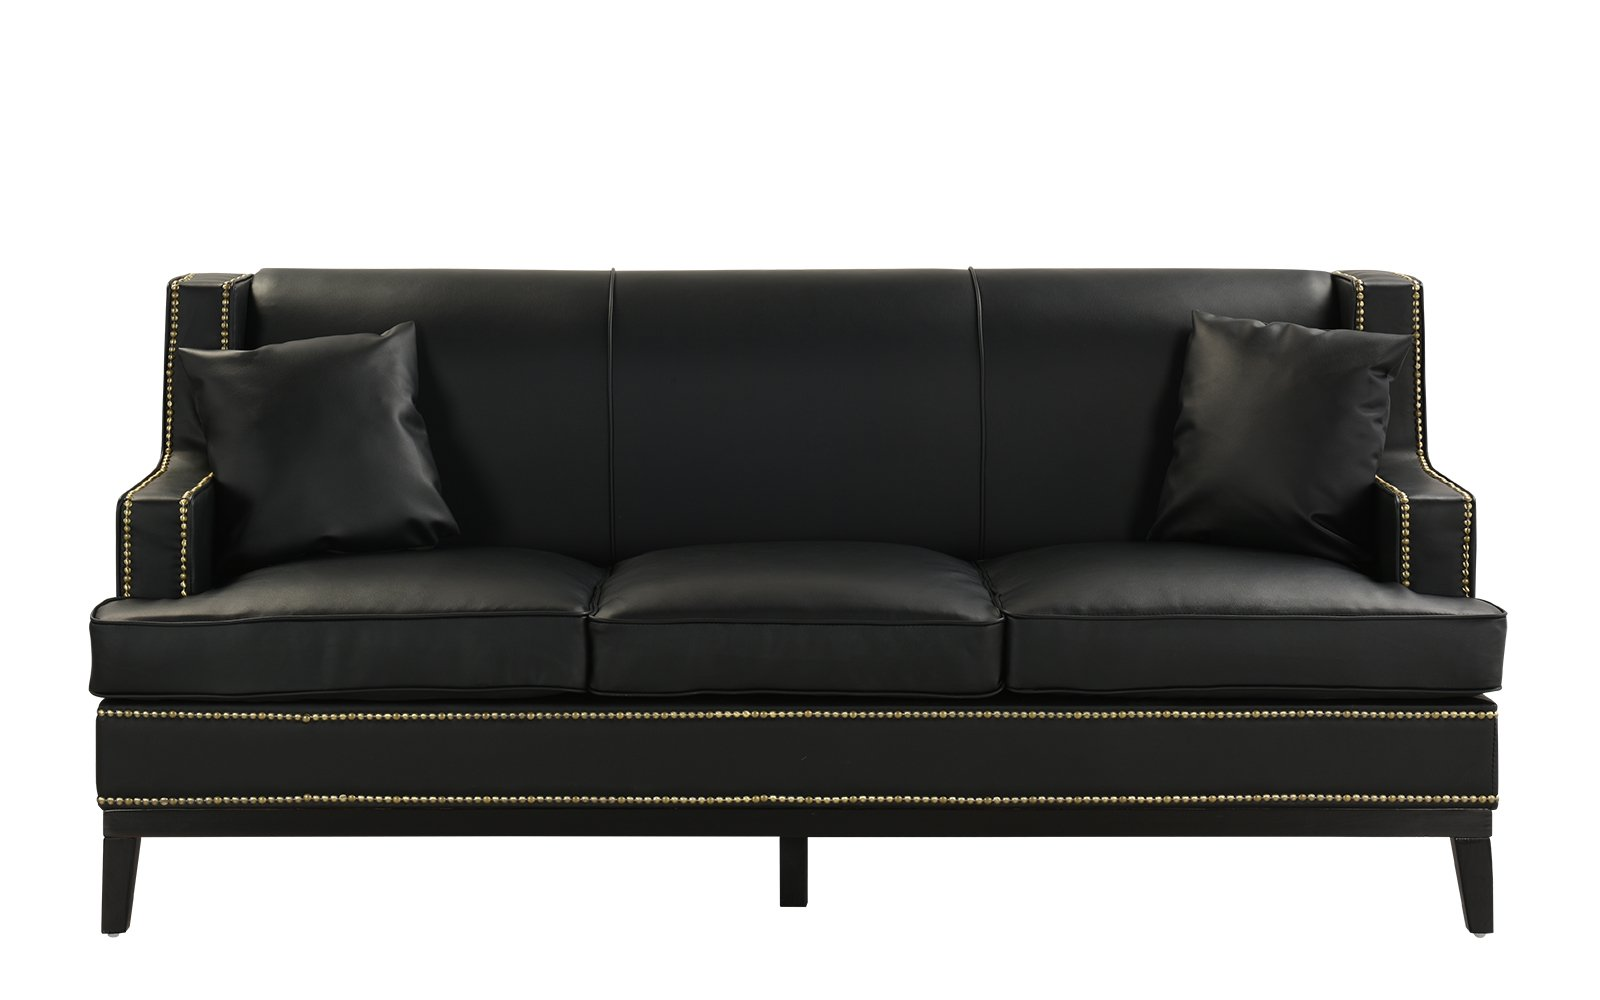 Black Modern Bonded Leather Sofa with Nailhead Trim Detail, 2 Accent Pillows